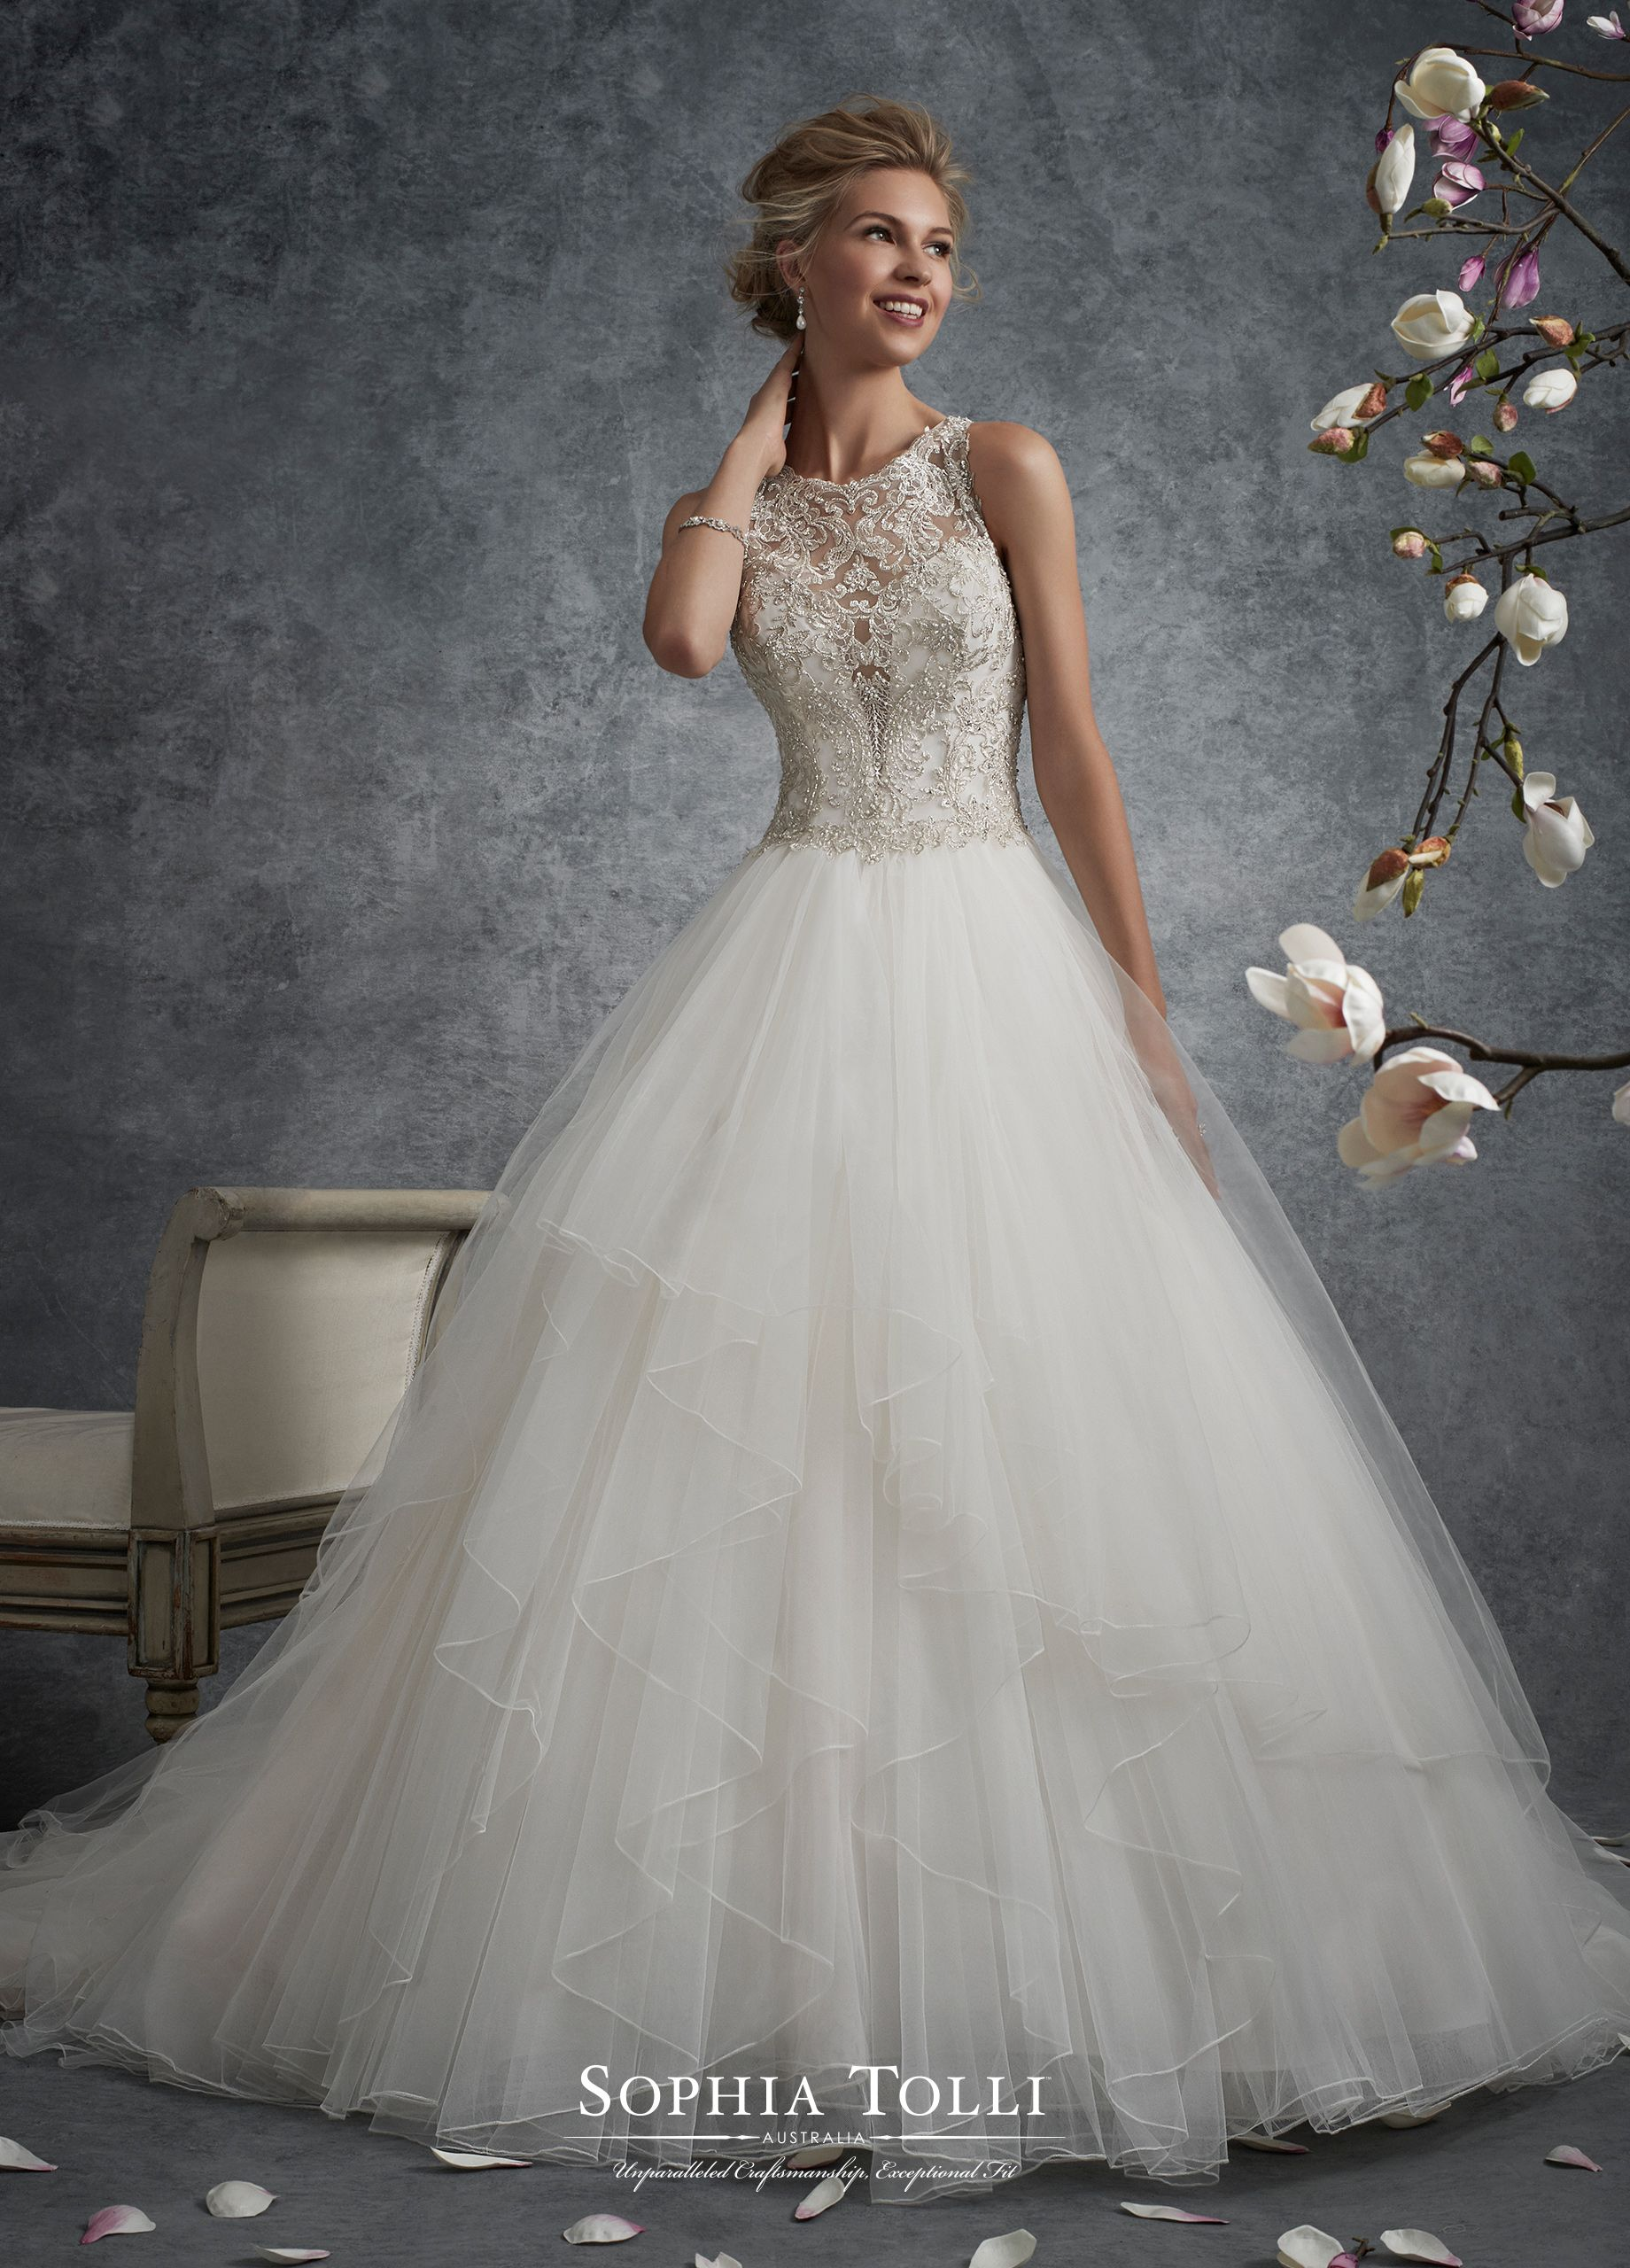 Sleeveless Misty Tulle And Lace Motif Ball Gown Y21745 Aquila Wedding Gown Gallery Wedding Dresses Bridal Dresses Online